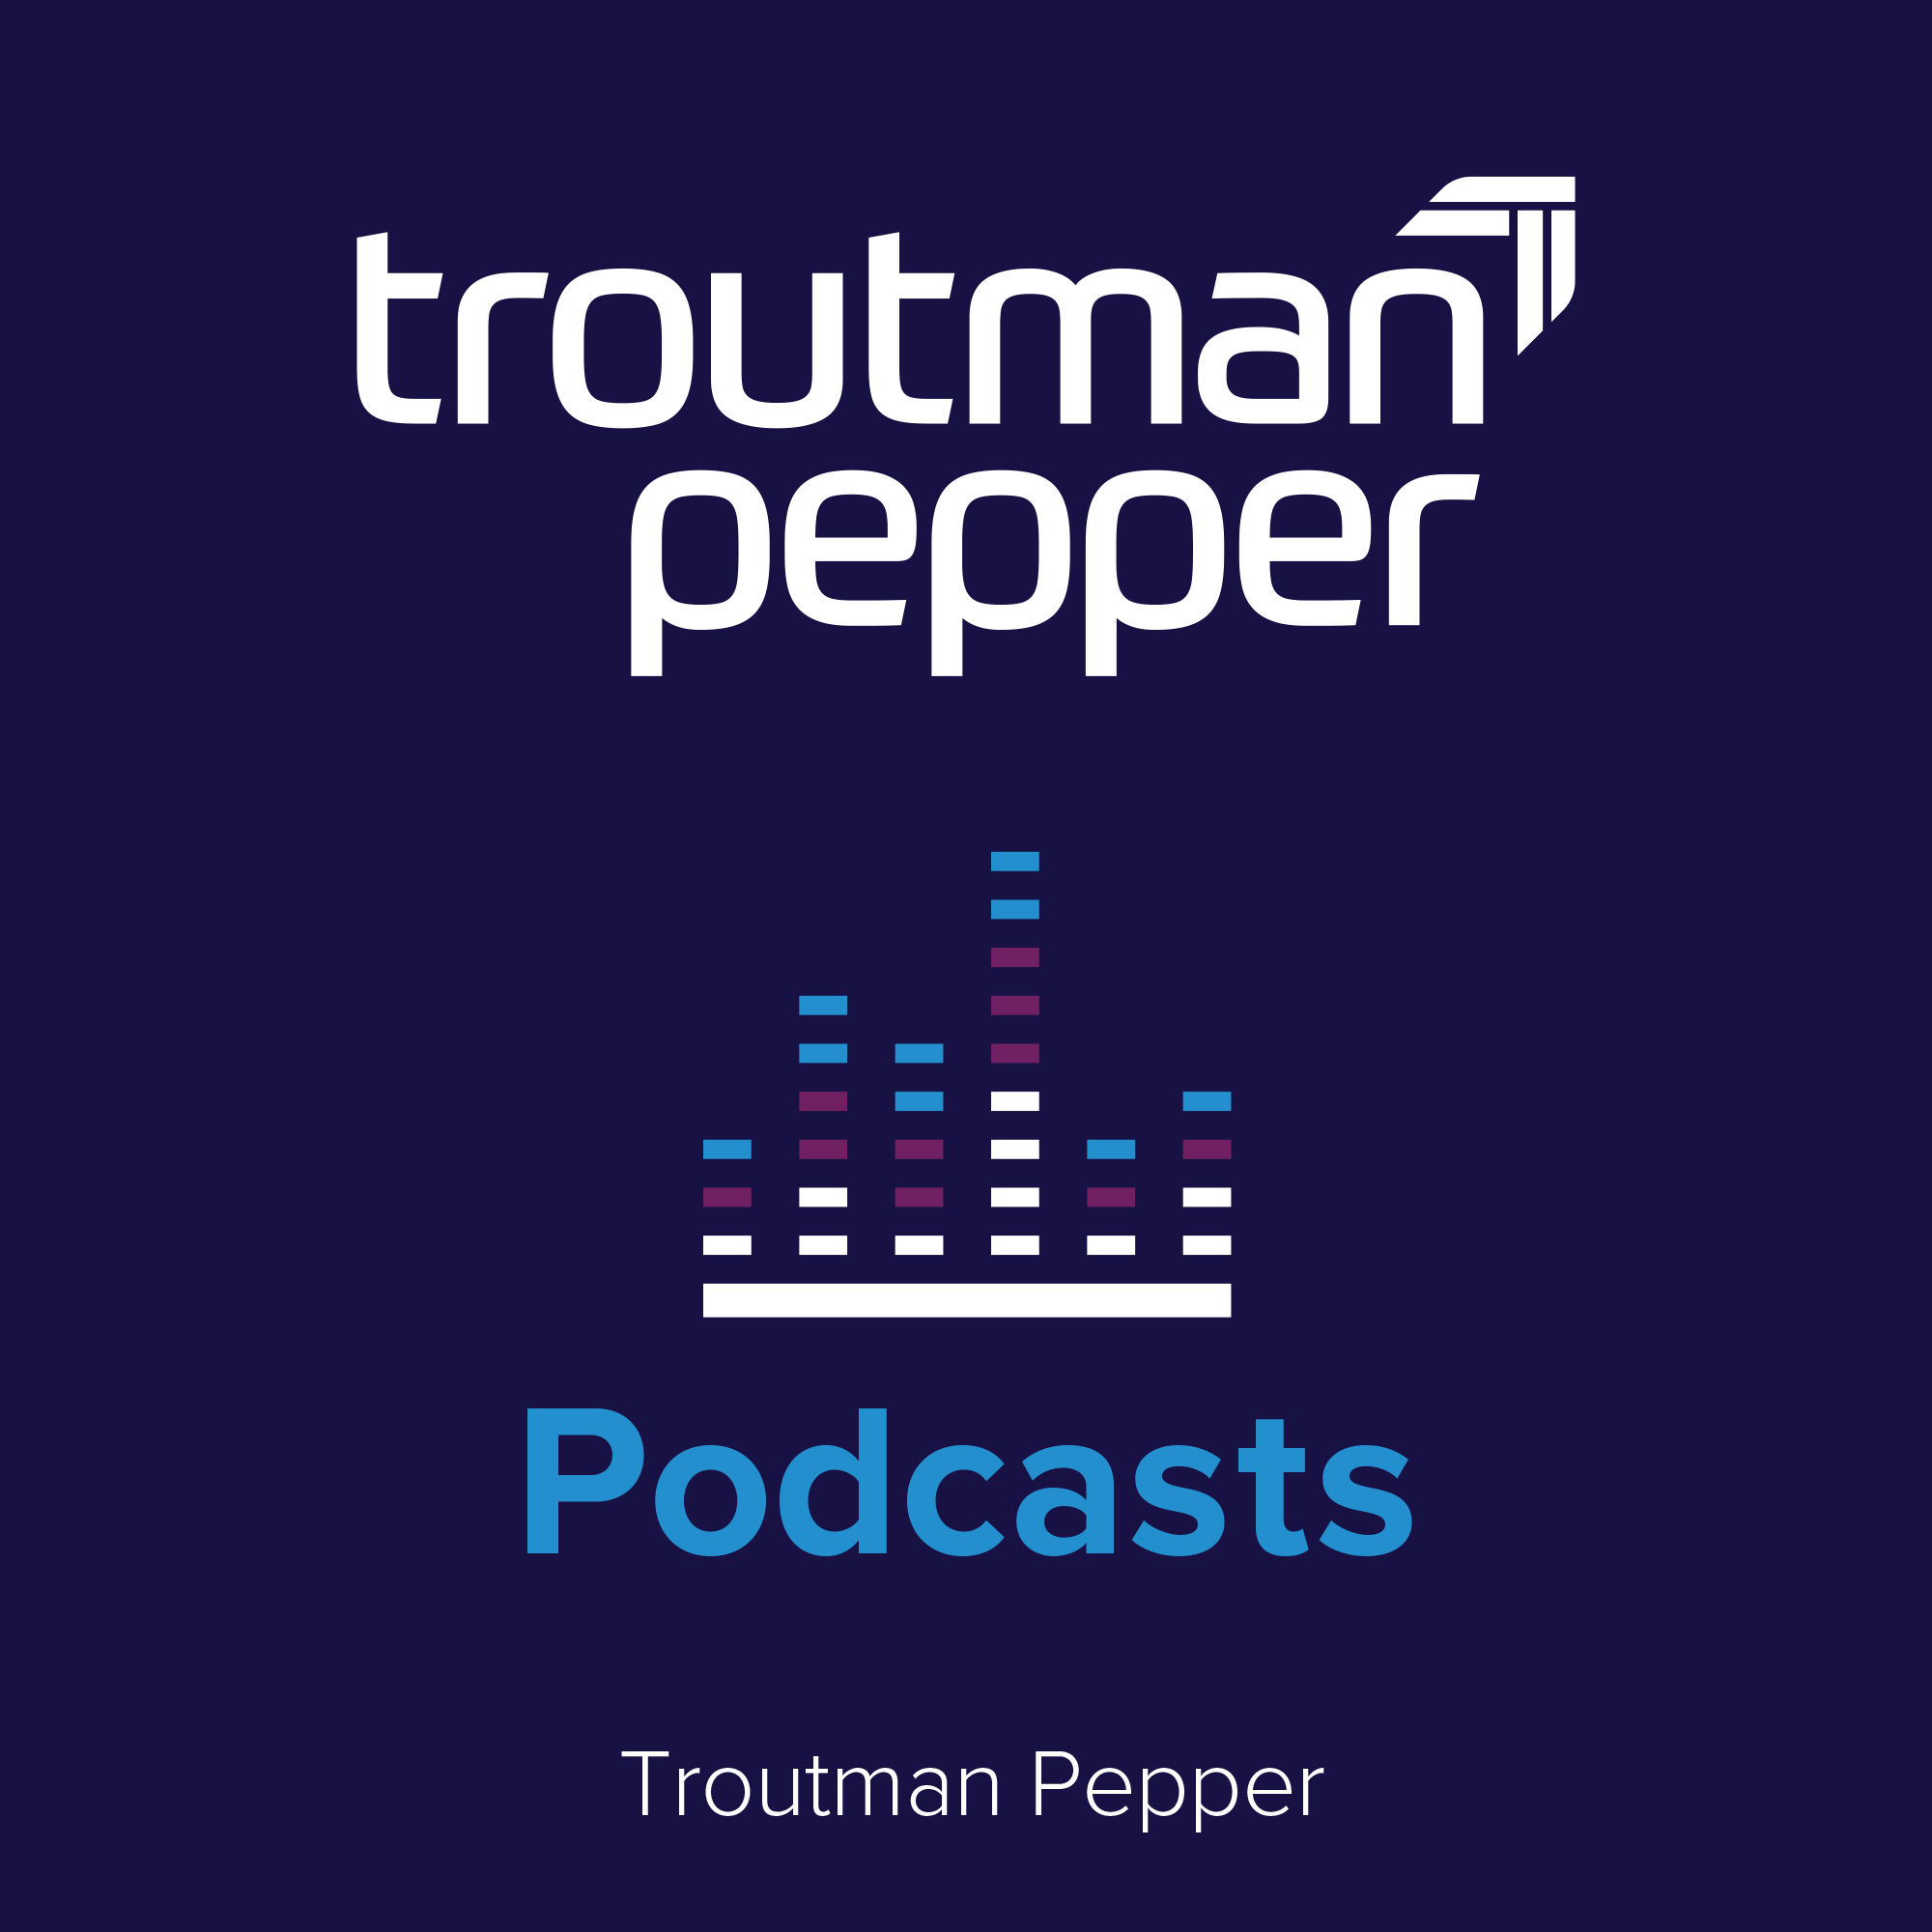 Troutman Pepper Podcasts